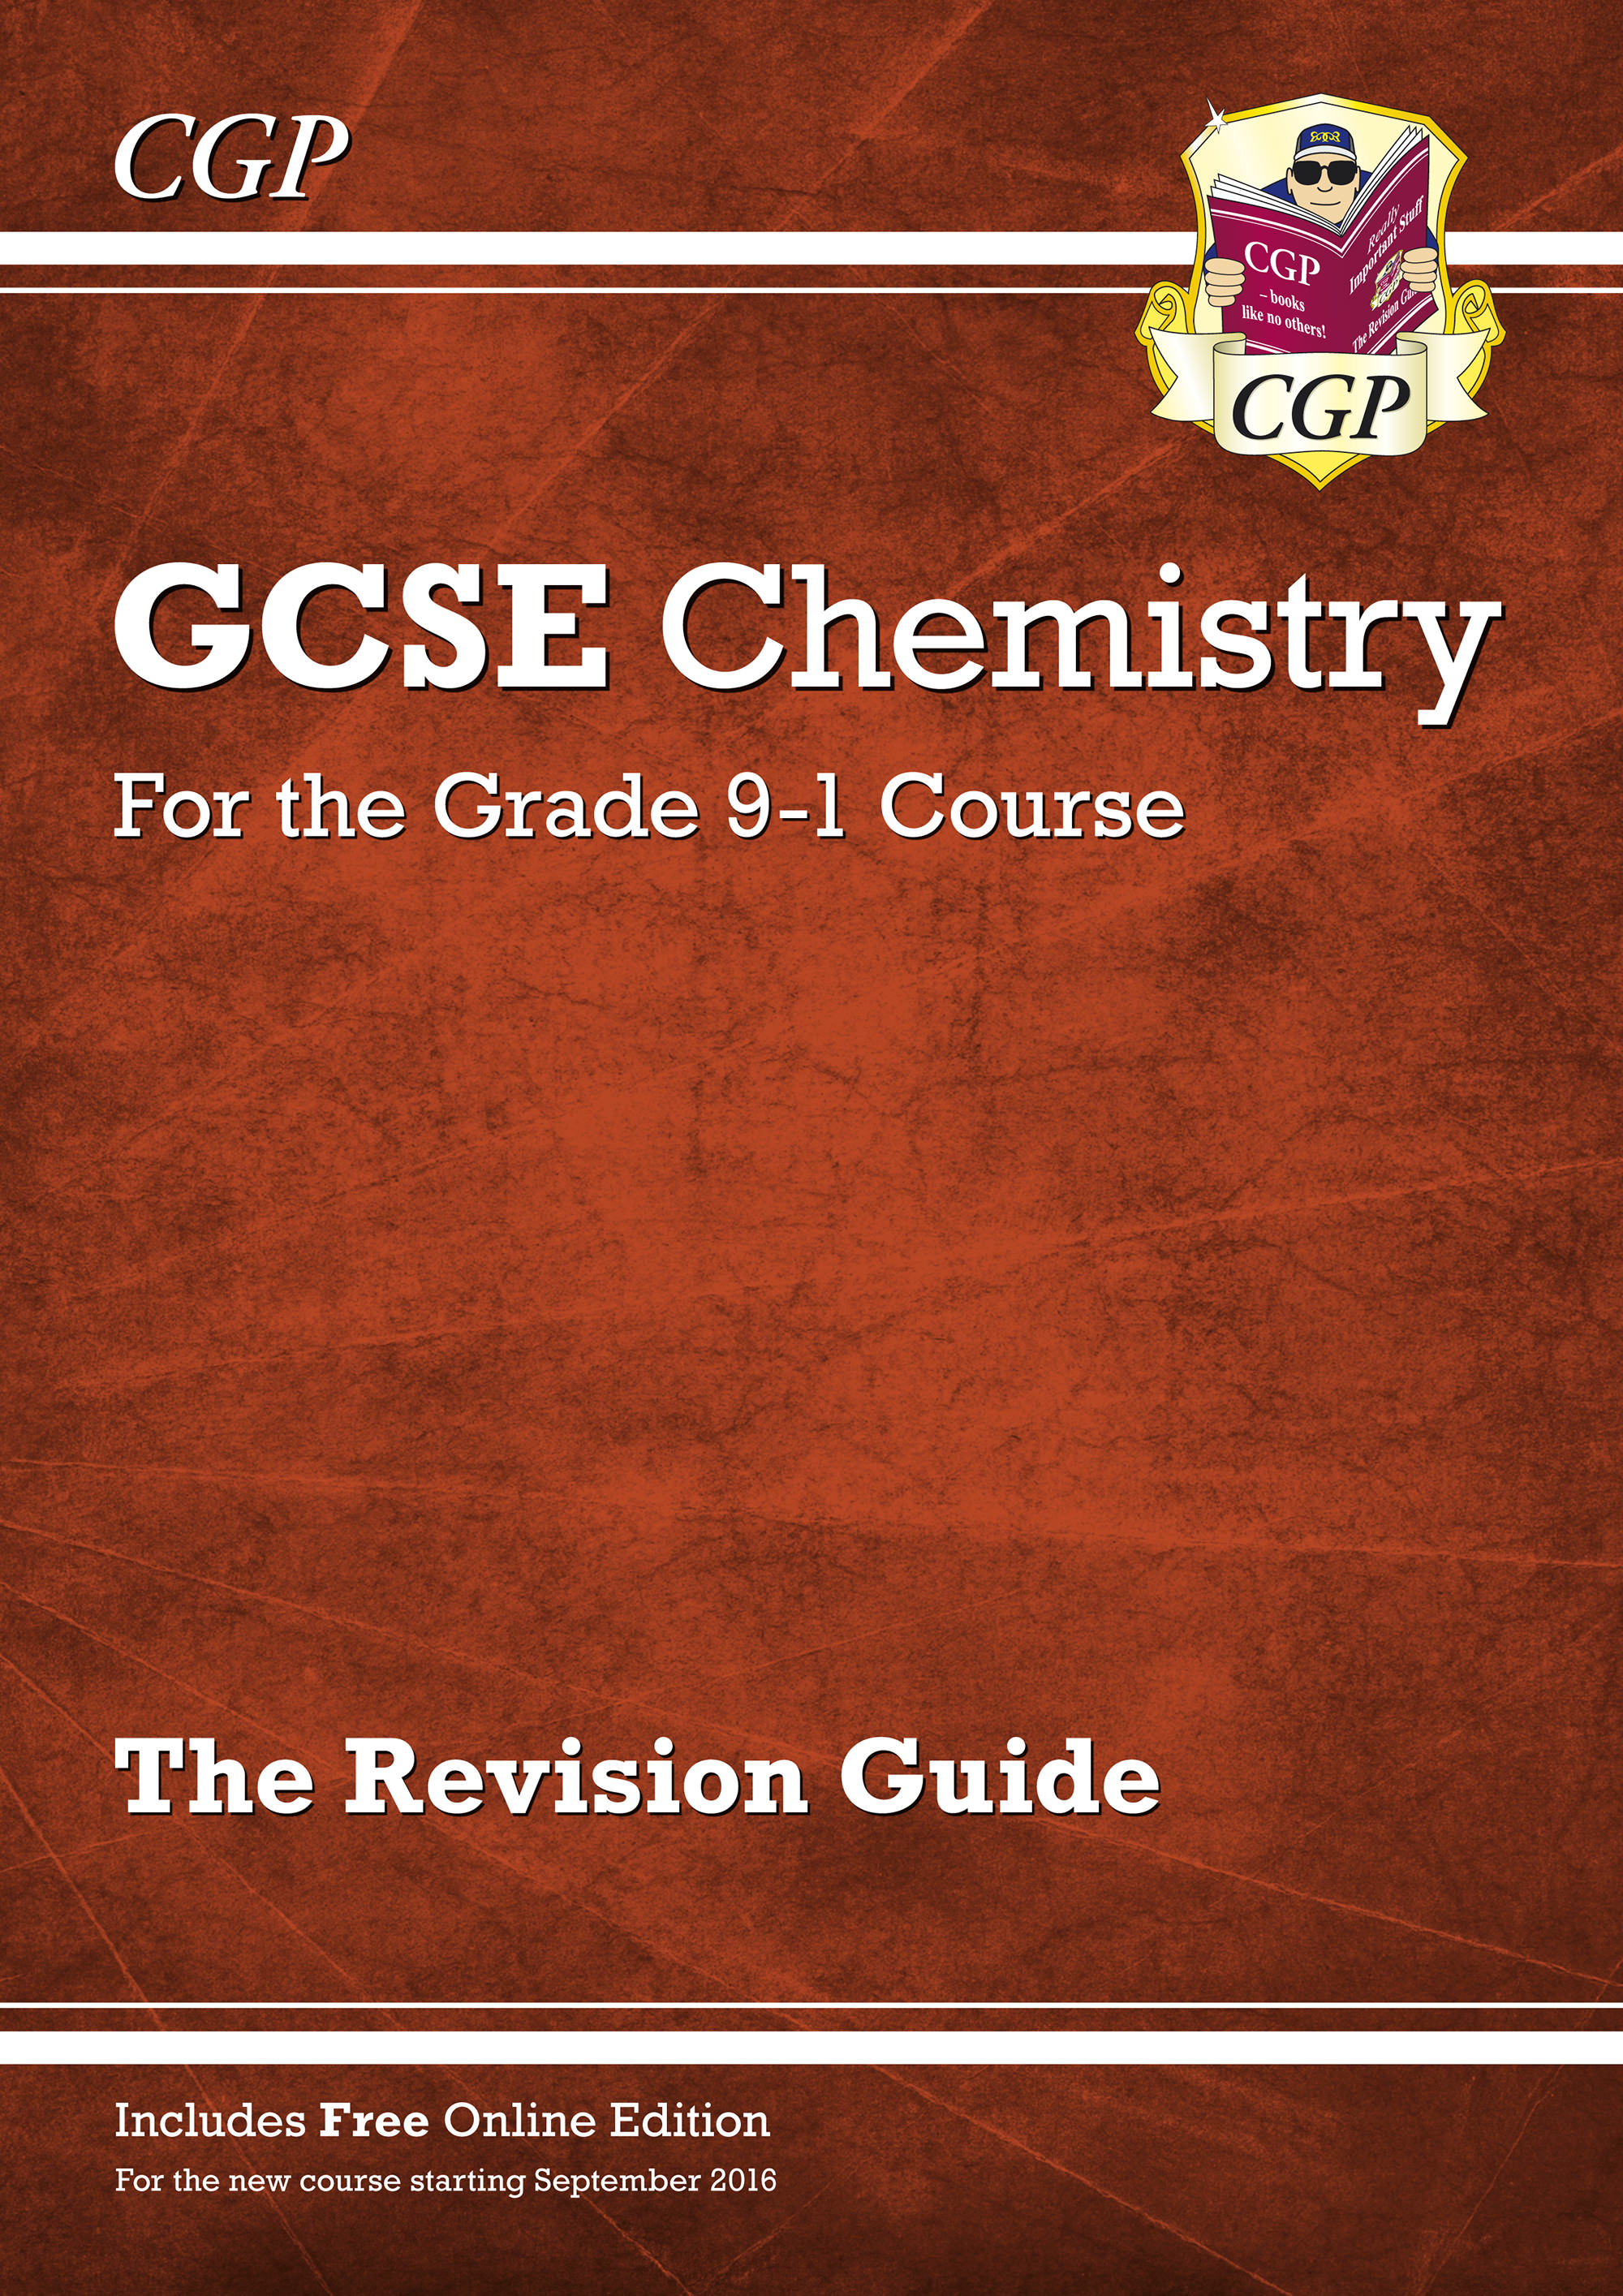 CHR45 - Grade 9-1 GCSE Chemistry: Revision Guide with Online Edition